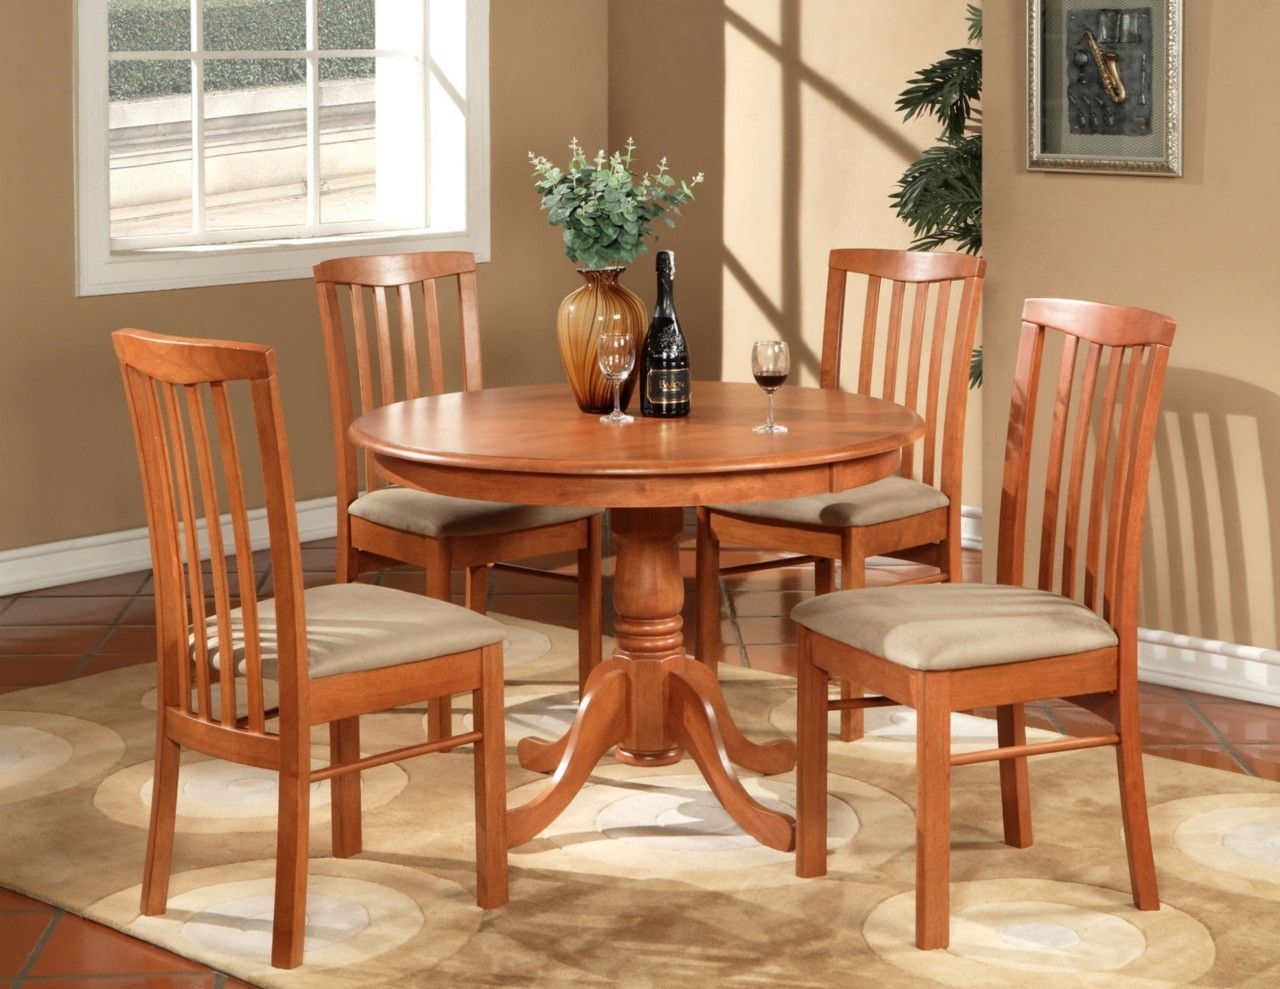 5Pc Hartland Round Dinette Kitchen Table Set With 4 Cushion Chairs Cherry  Ebay